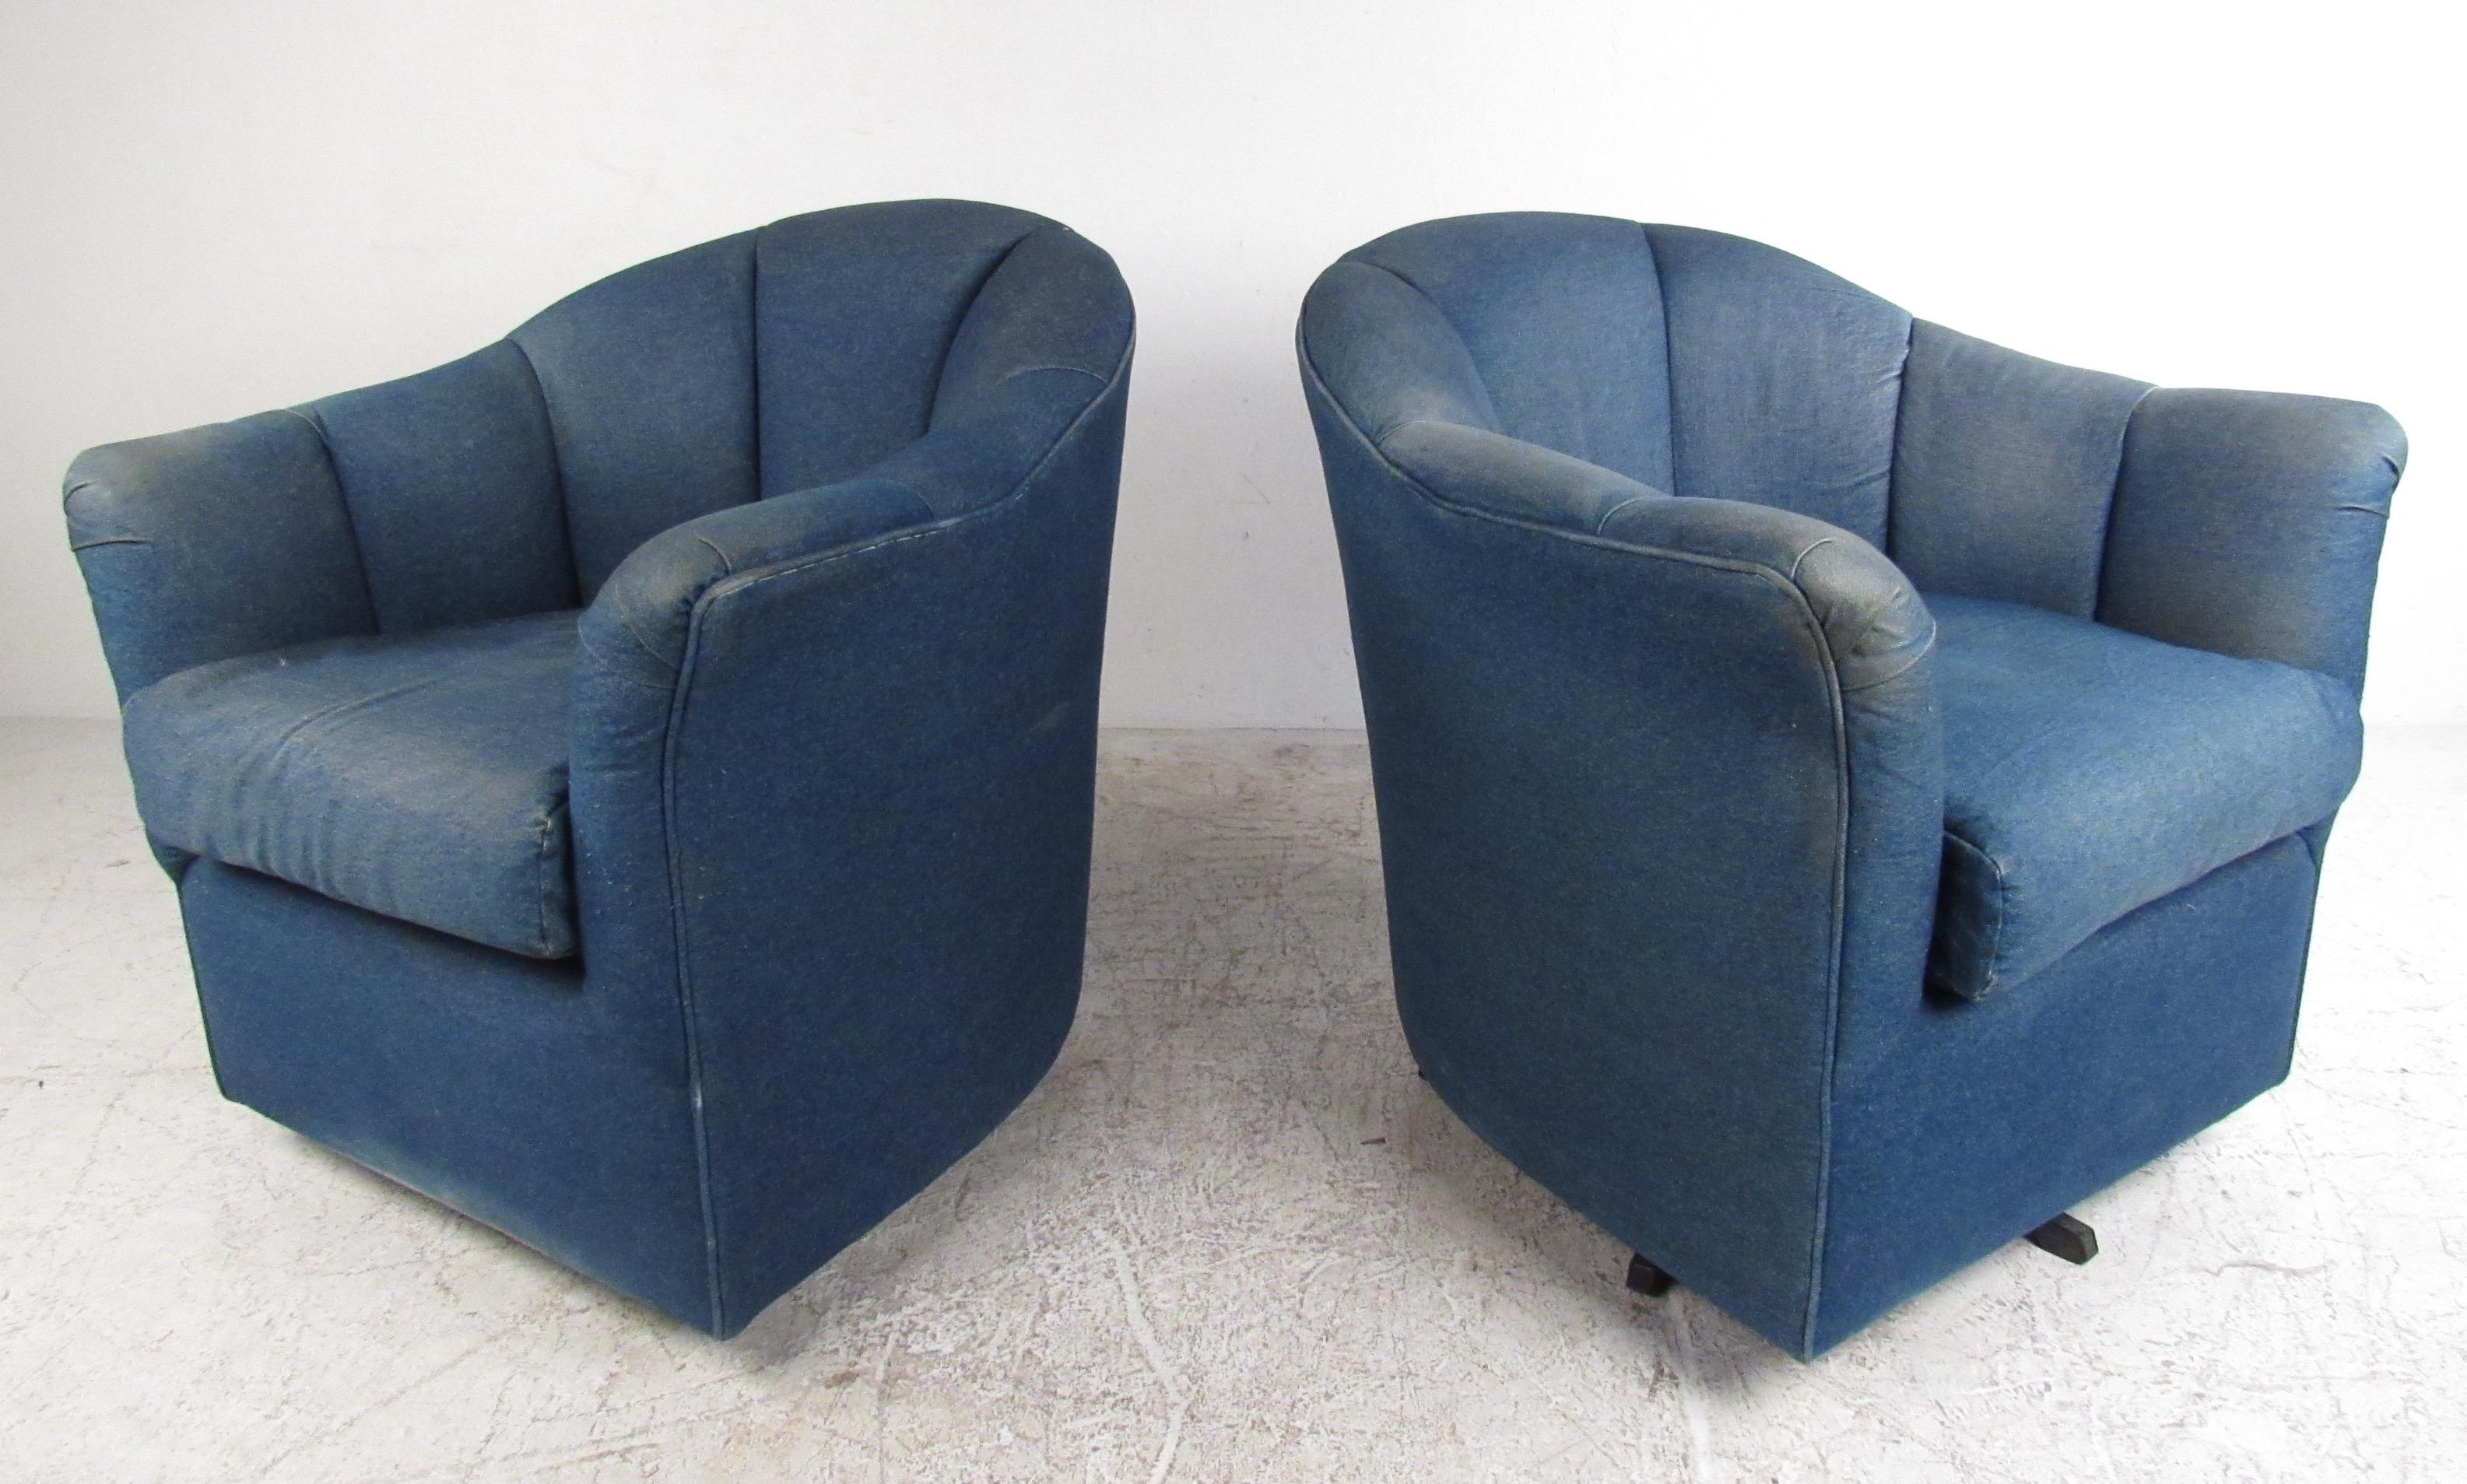 Merveilleux This Comfortably Upholstered Pair Of Chairs Features Denim Covering,  Comfortable Overstuffed Cushioning, And Swivel